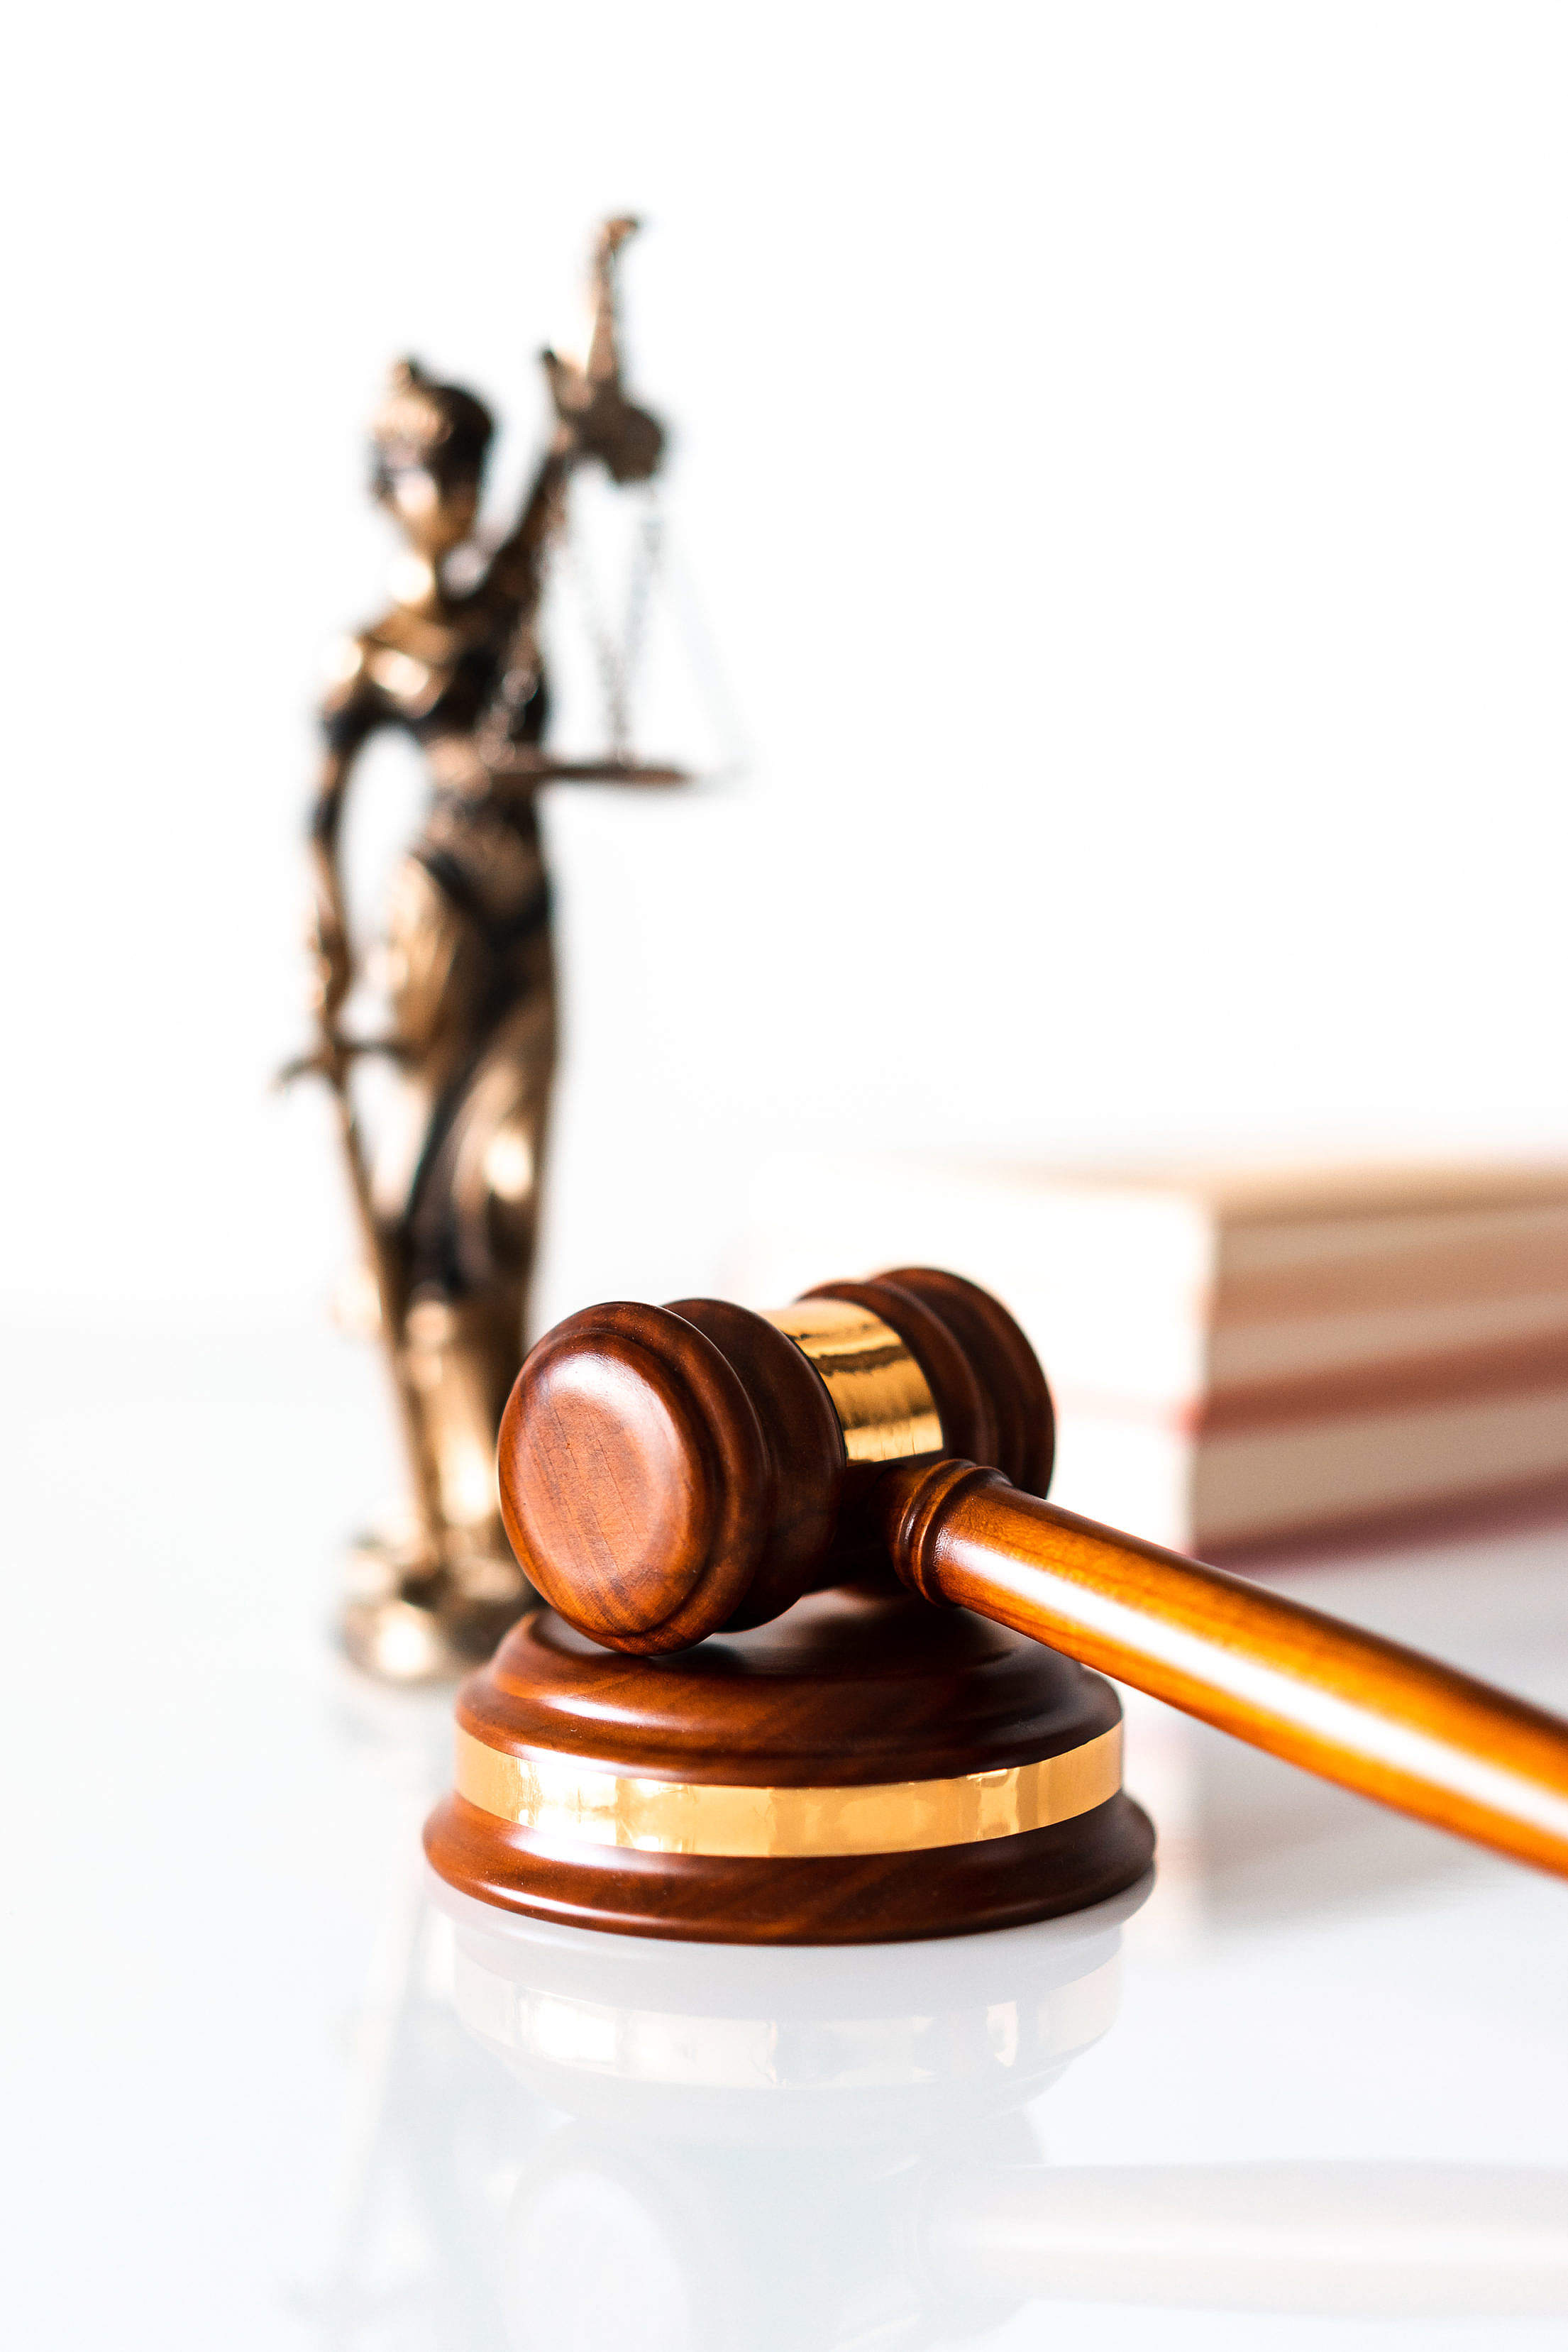 Judge Hammer and Blind Lady Justice Statue Free Stock Photo